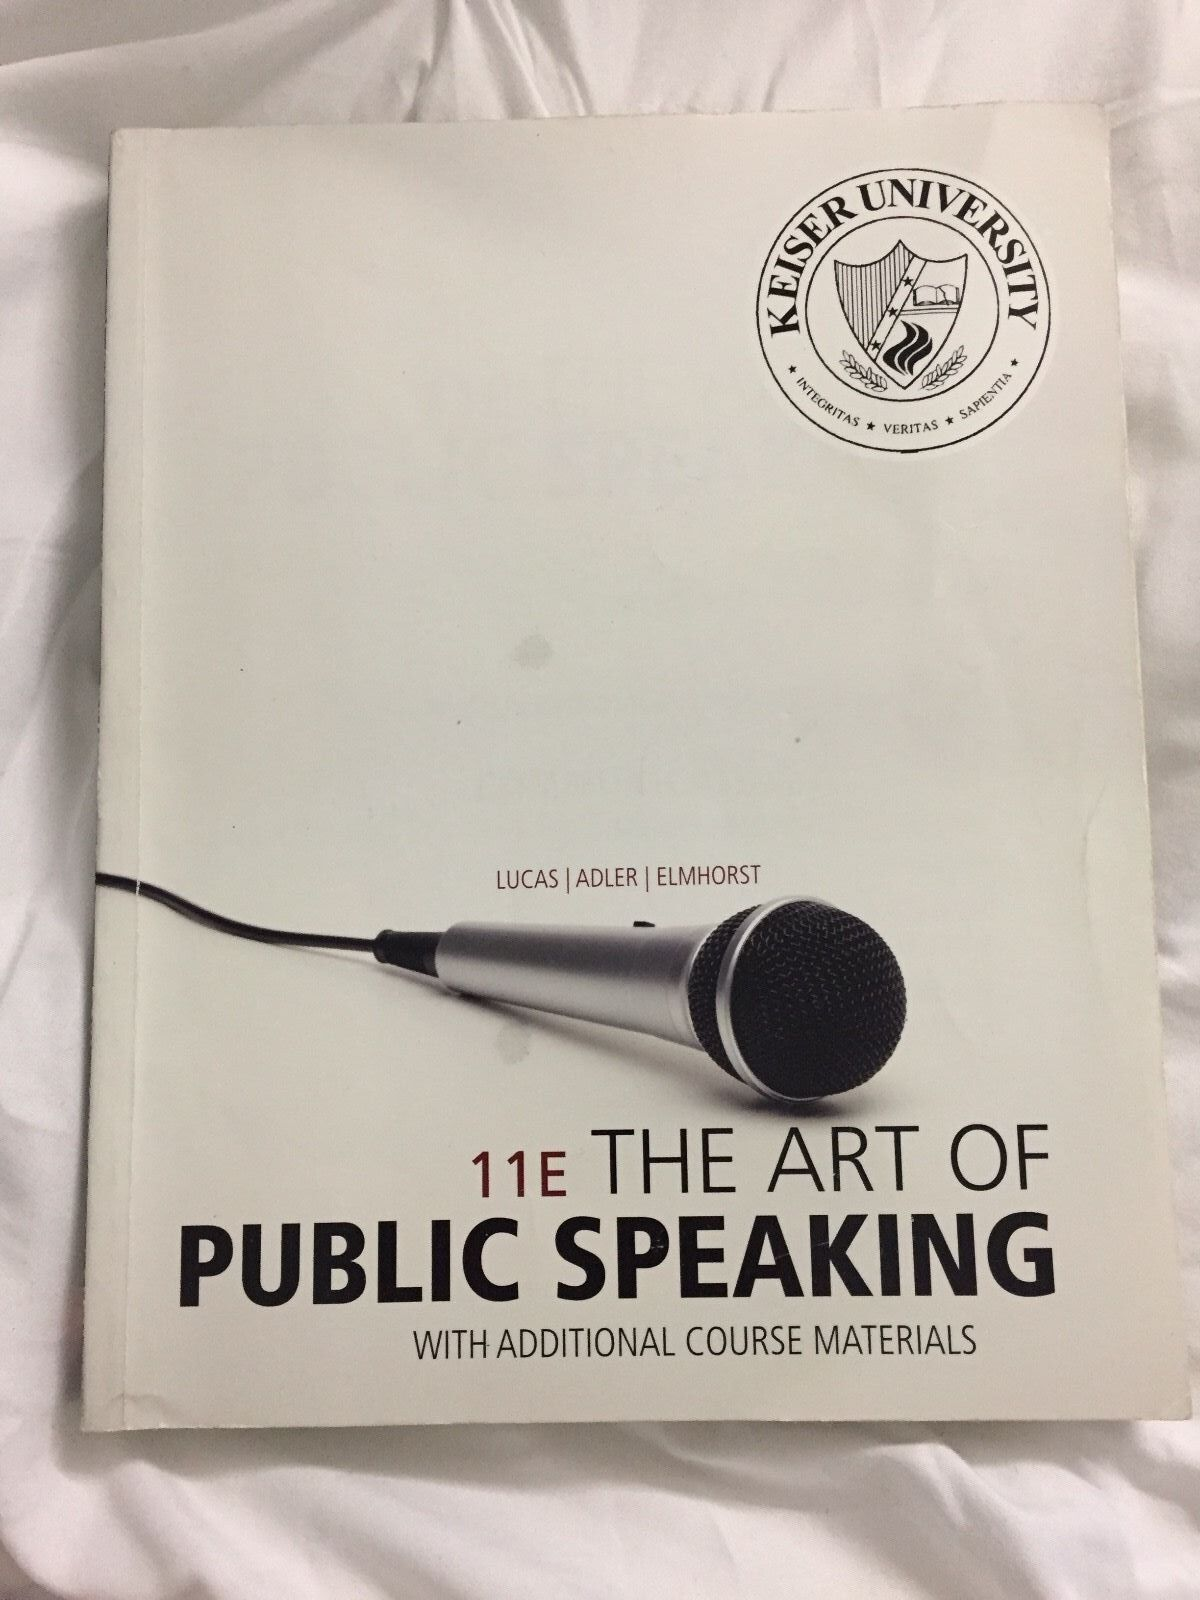 9780077629489 The Art of Public Speaking 11th Lucas Keiser ...